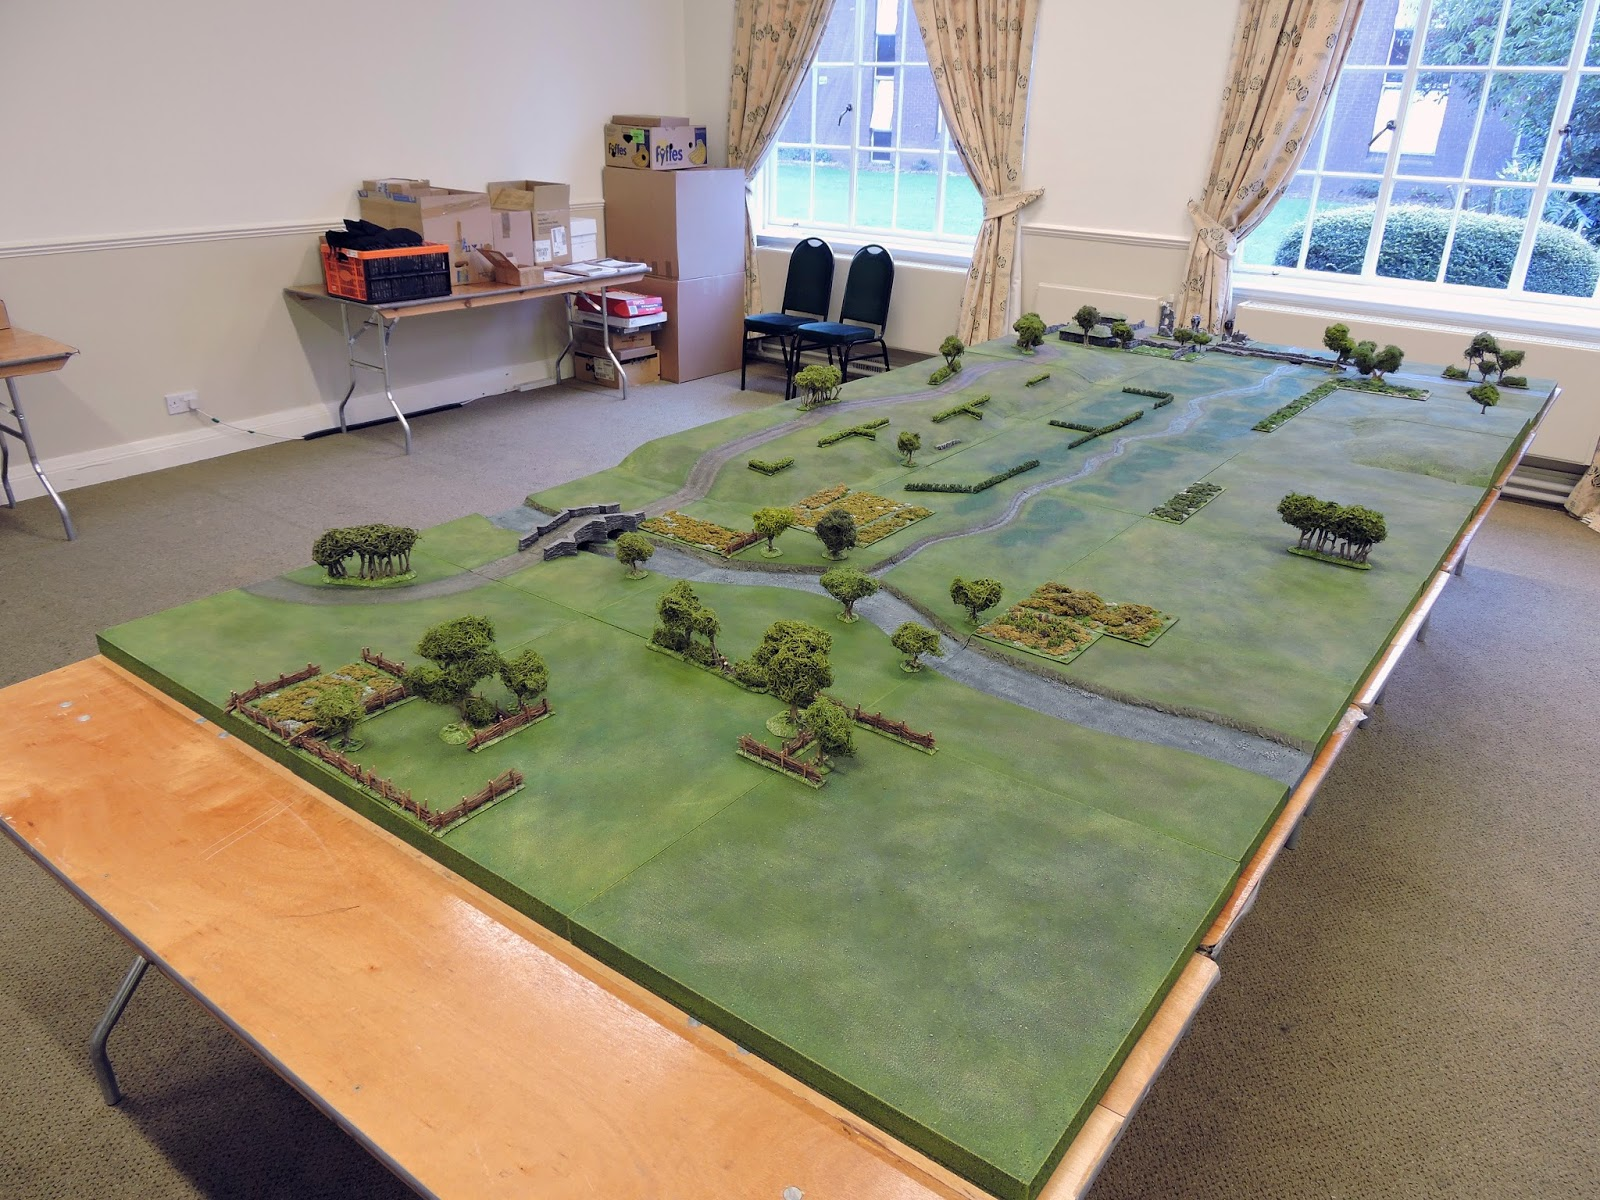 How to Make a Wargaming Table